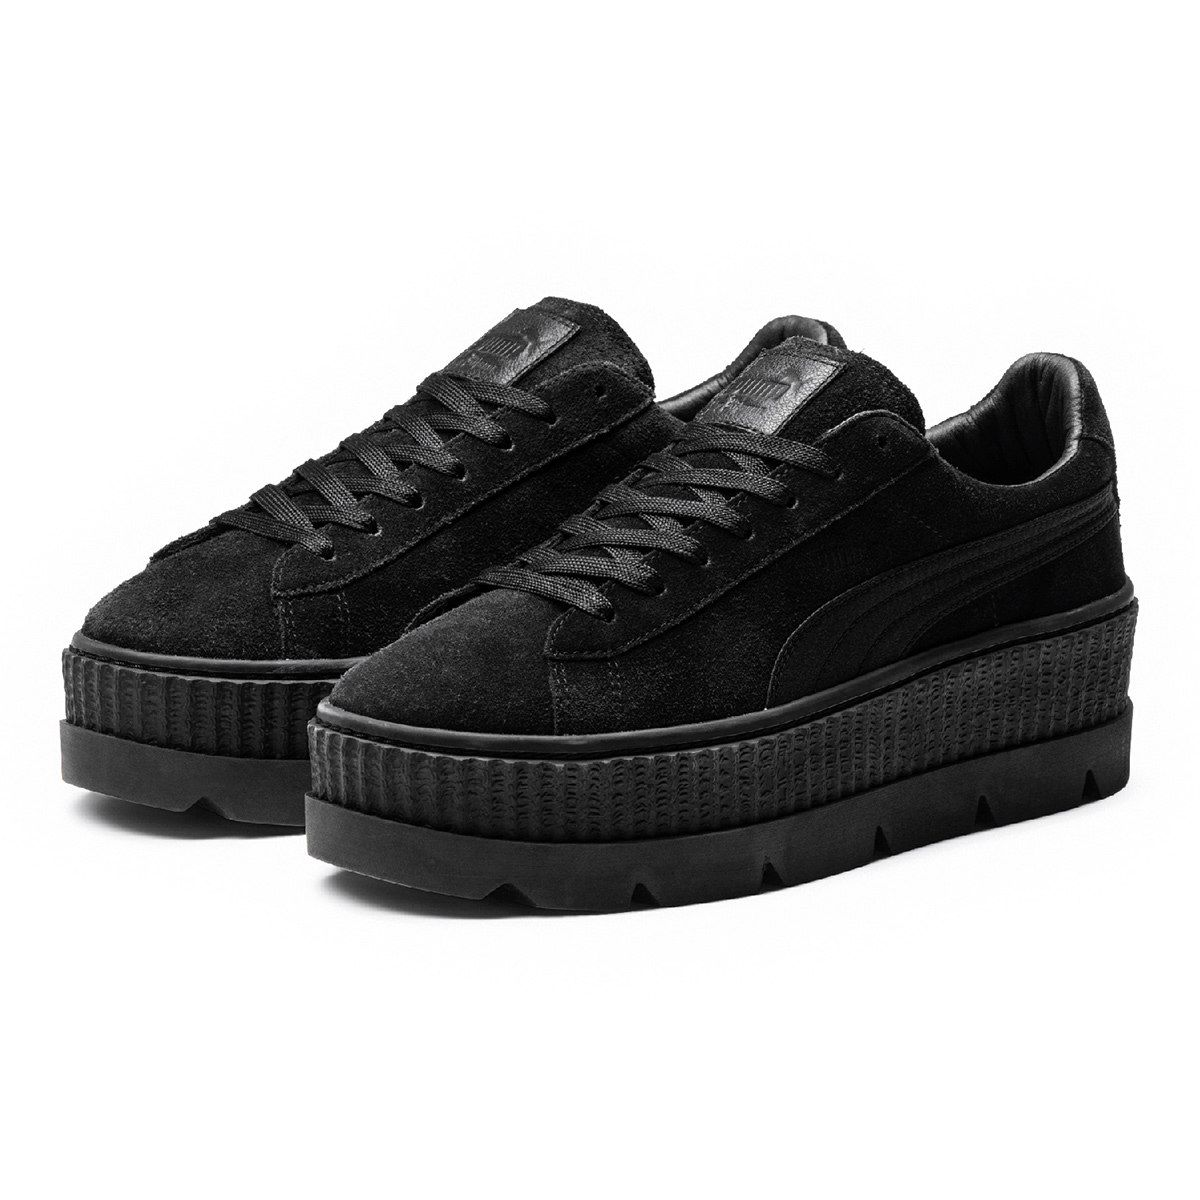 Tênis Puma Cleated Creeper Suede Feminino - Preto  cd41489377d55